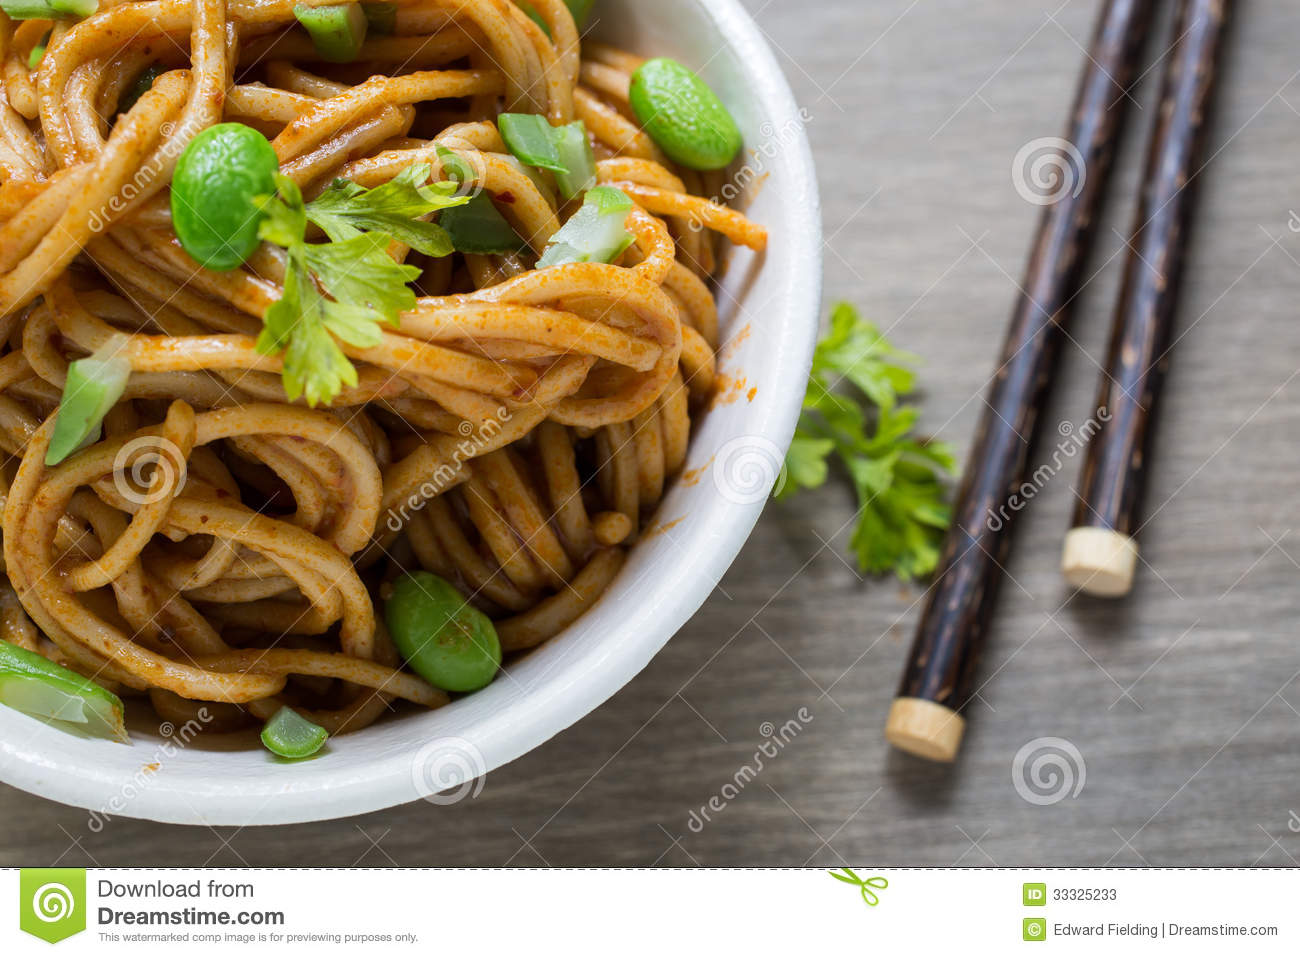 spicy Asian noodles meal with chopsticks.